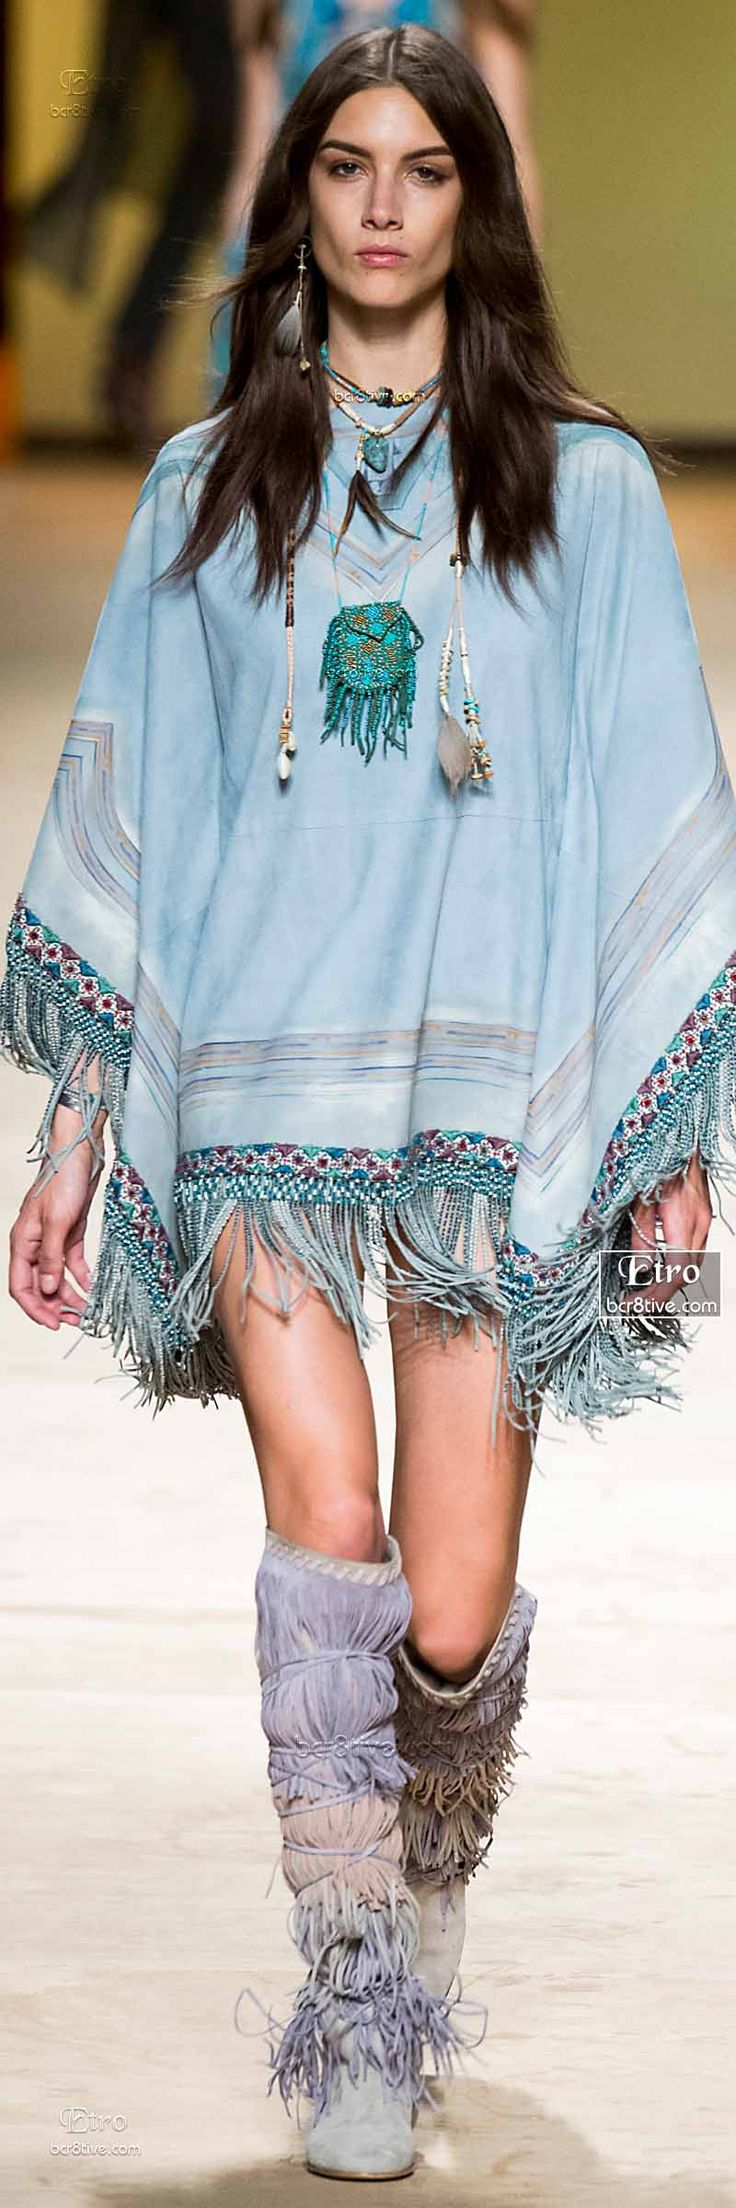 25+ Best Ideas About Native American Fashion On Pinterest